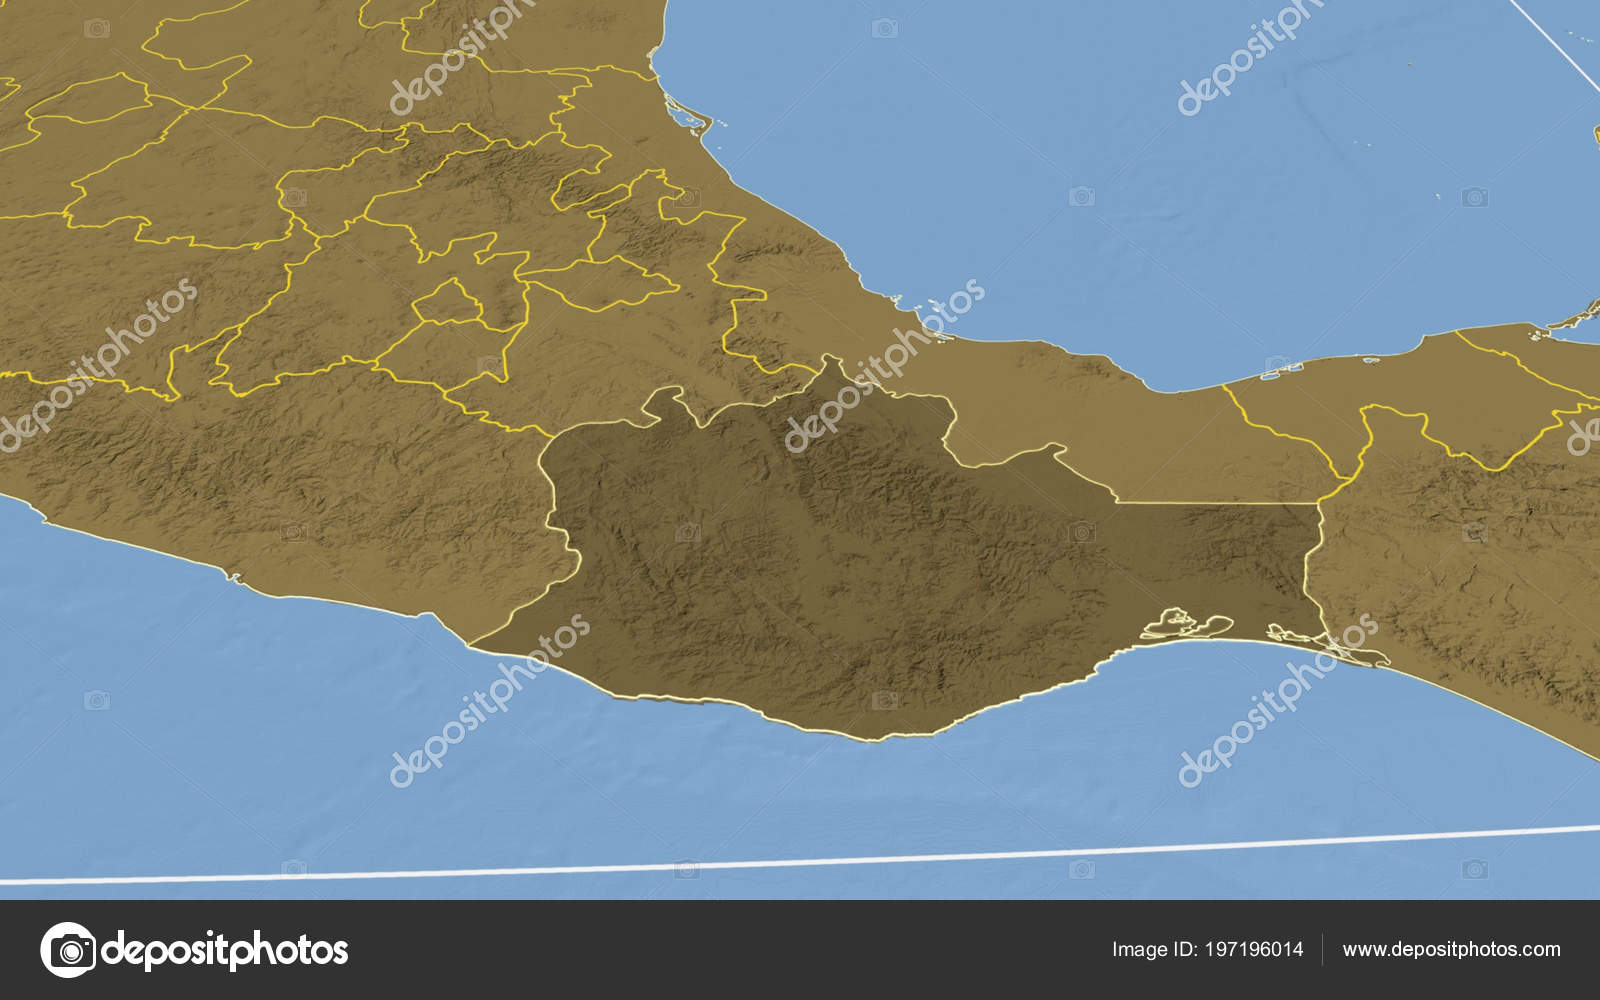 Oaxaca Region Mexico Outlined Bilevel Elevation Map — Stock Photo ...